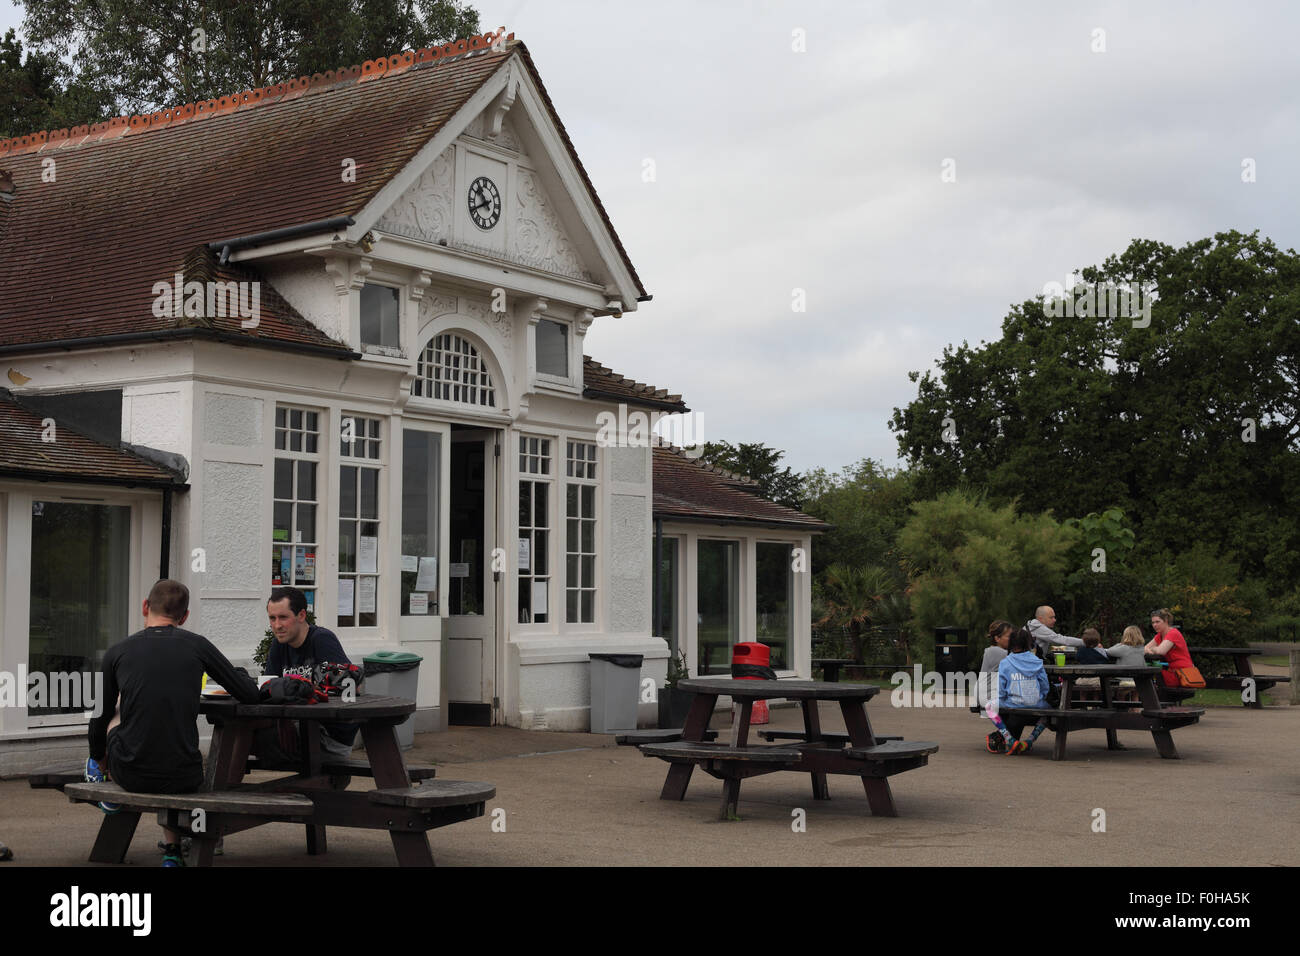 Young dads meeting for breakfast at the Pavillion Cafe, Dulwich Park, London SE21 - Stock Image